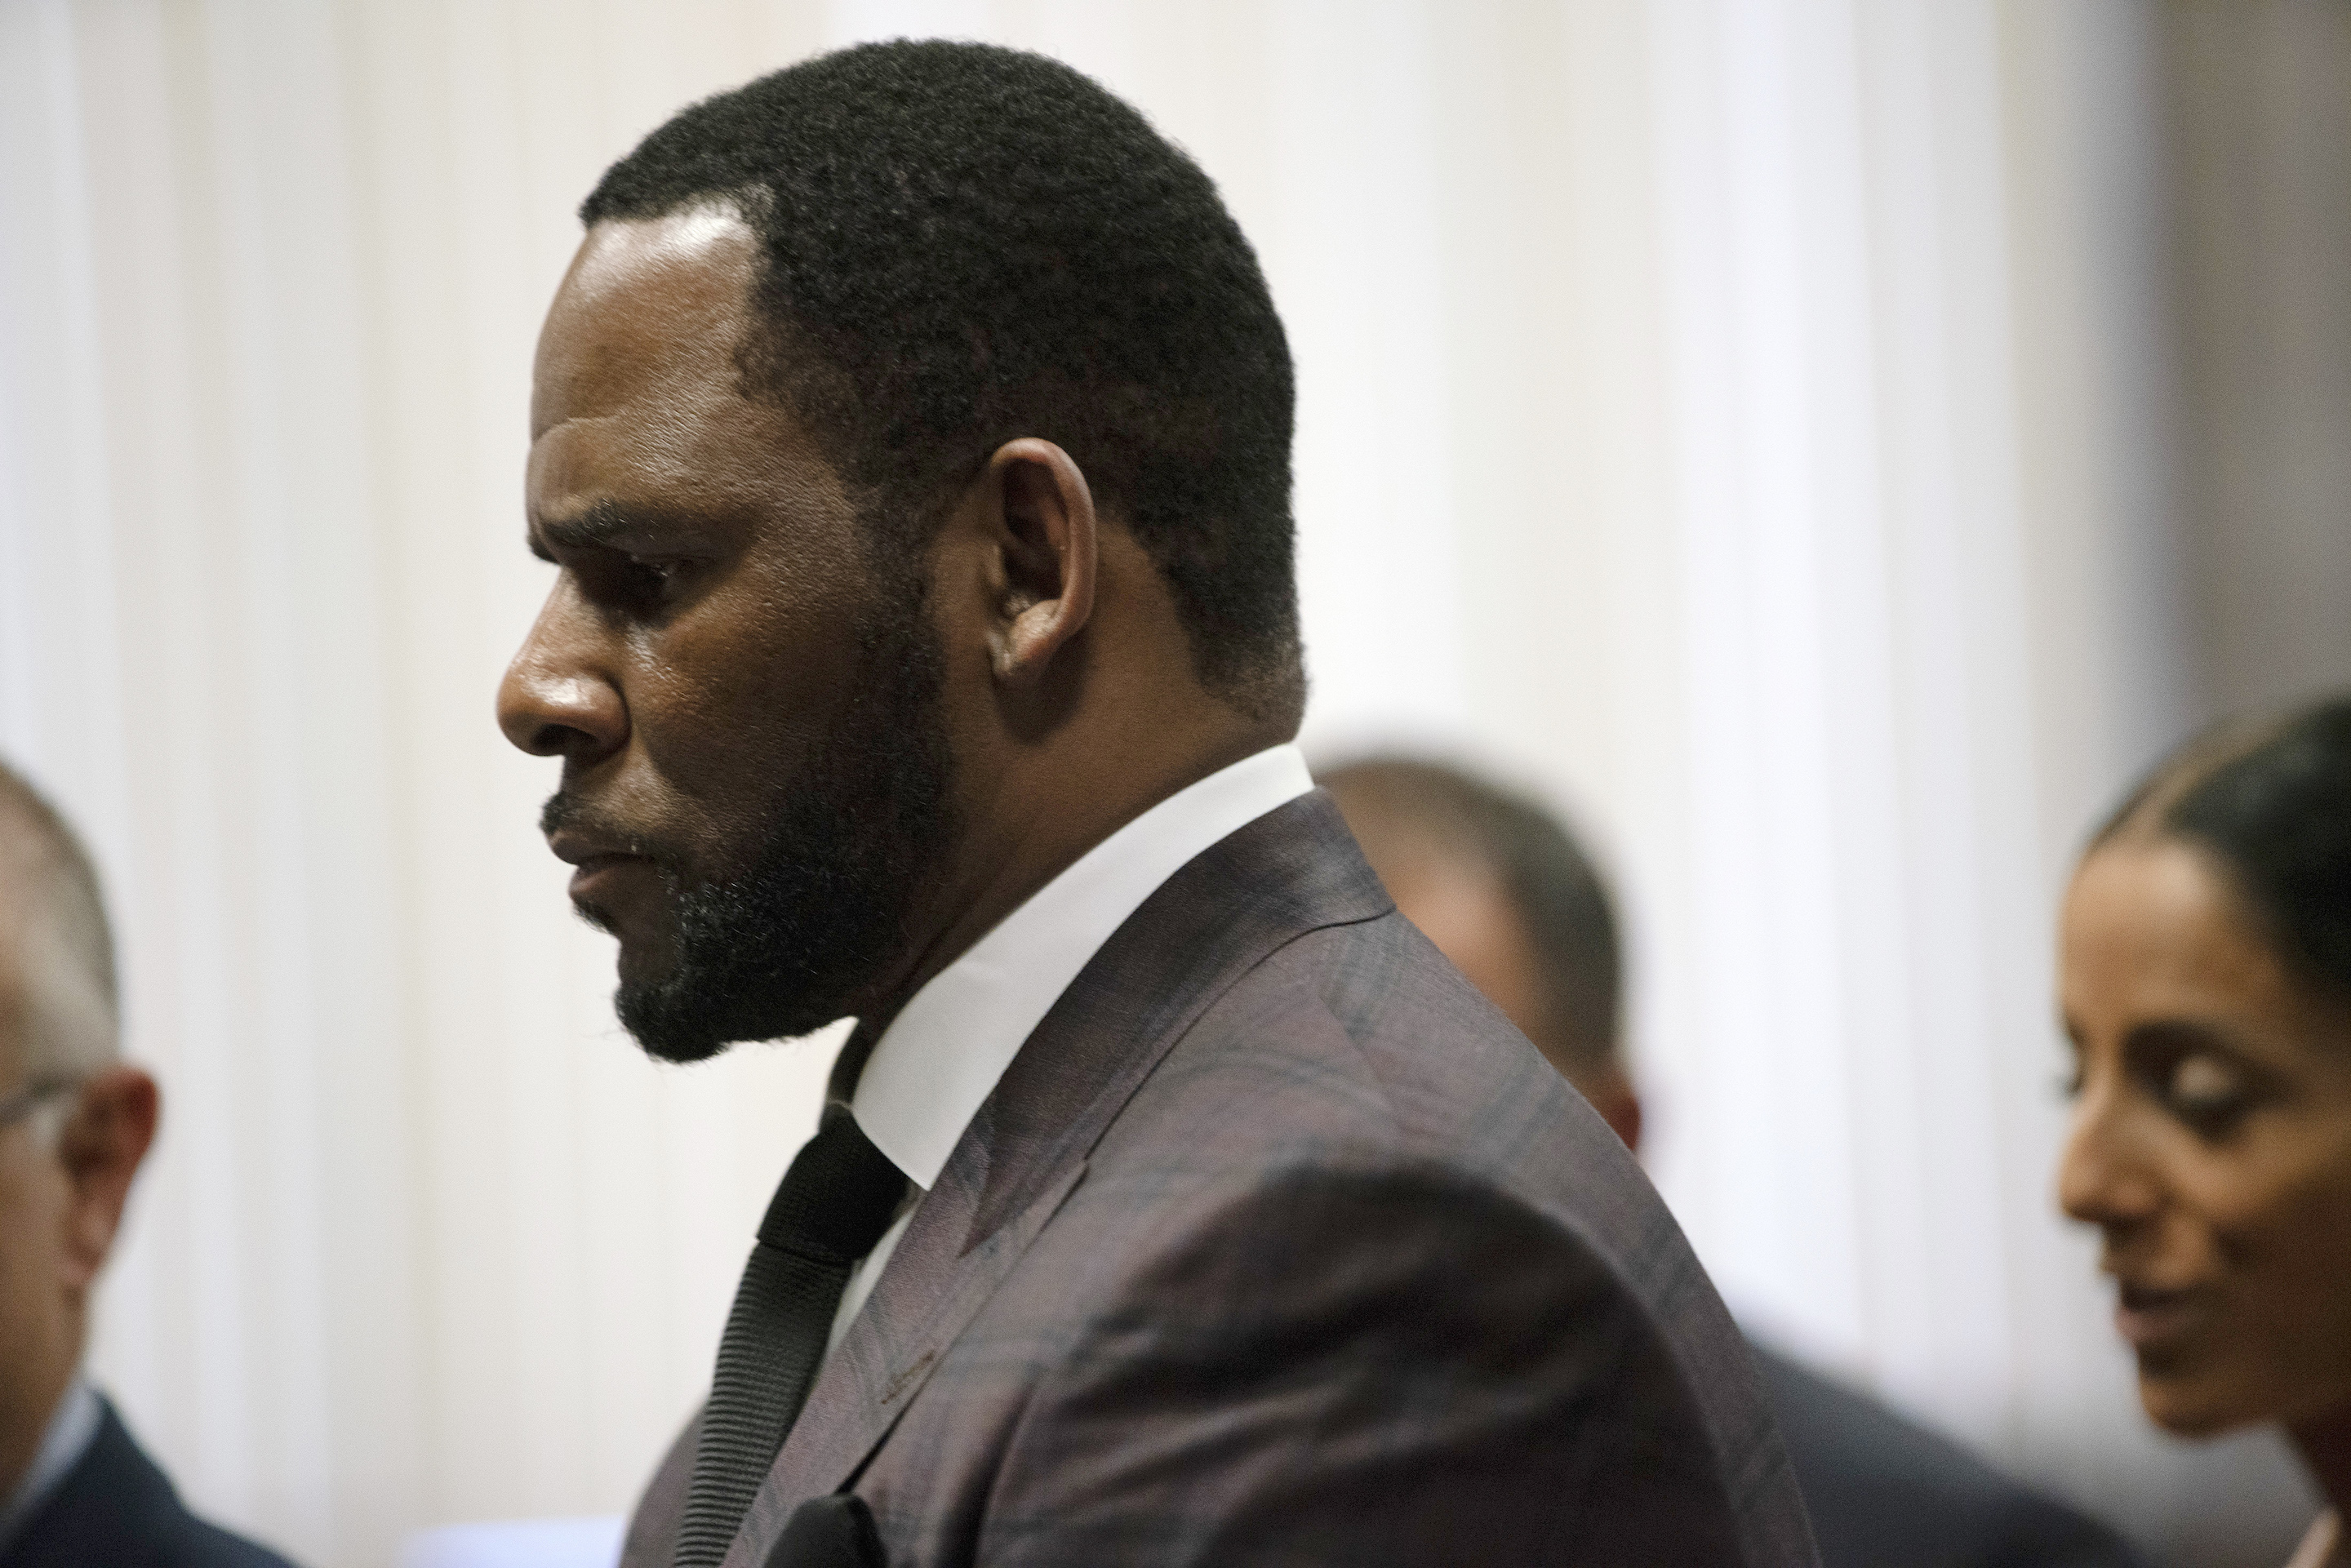 R Kelly Arrested On Federal Sex Crime Charges Including Producing